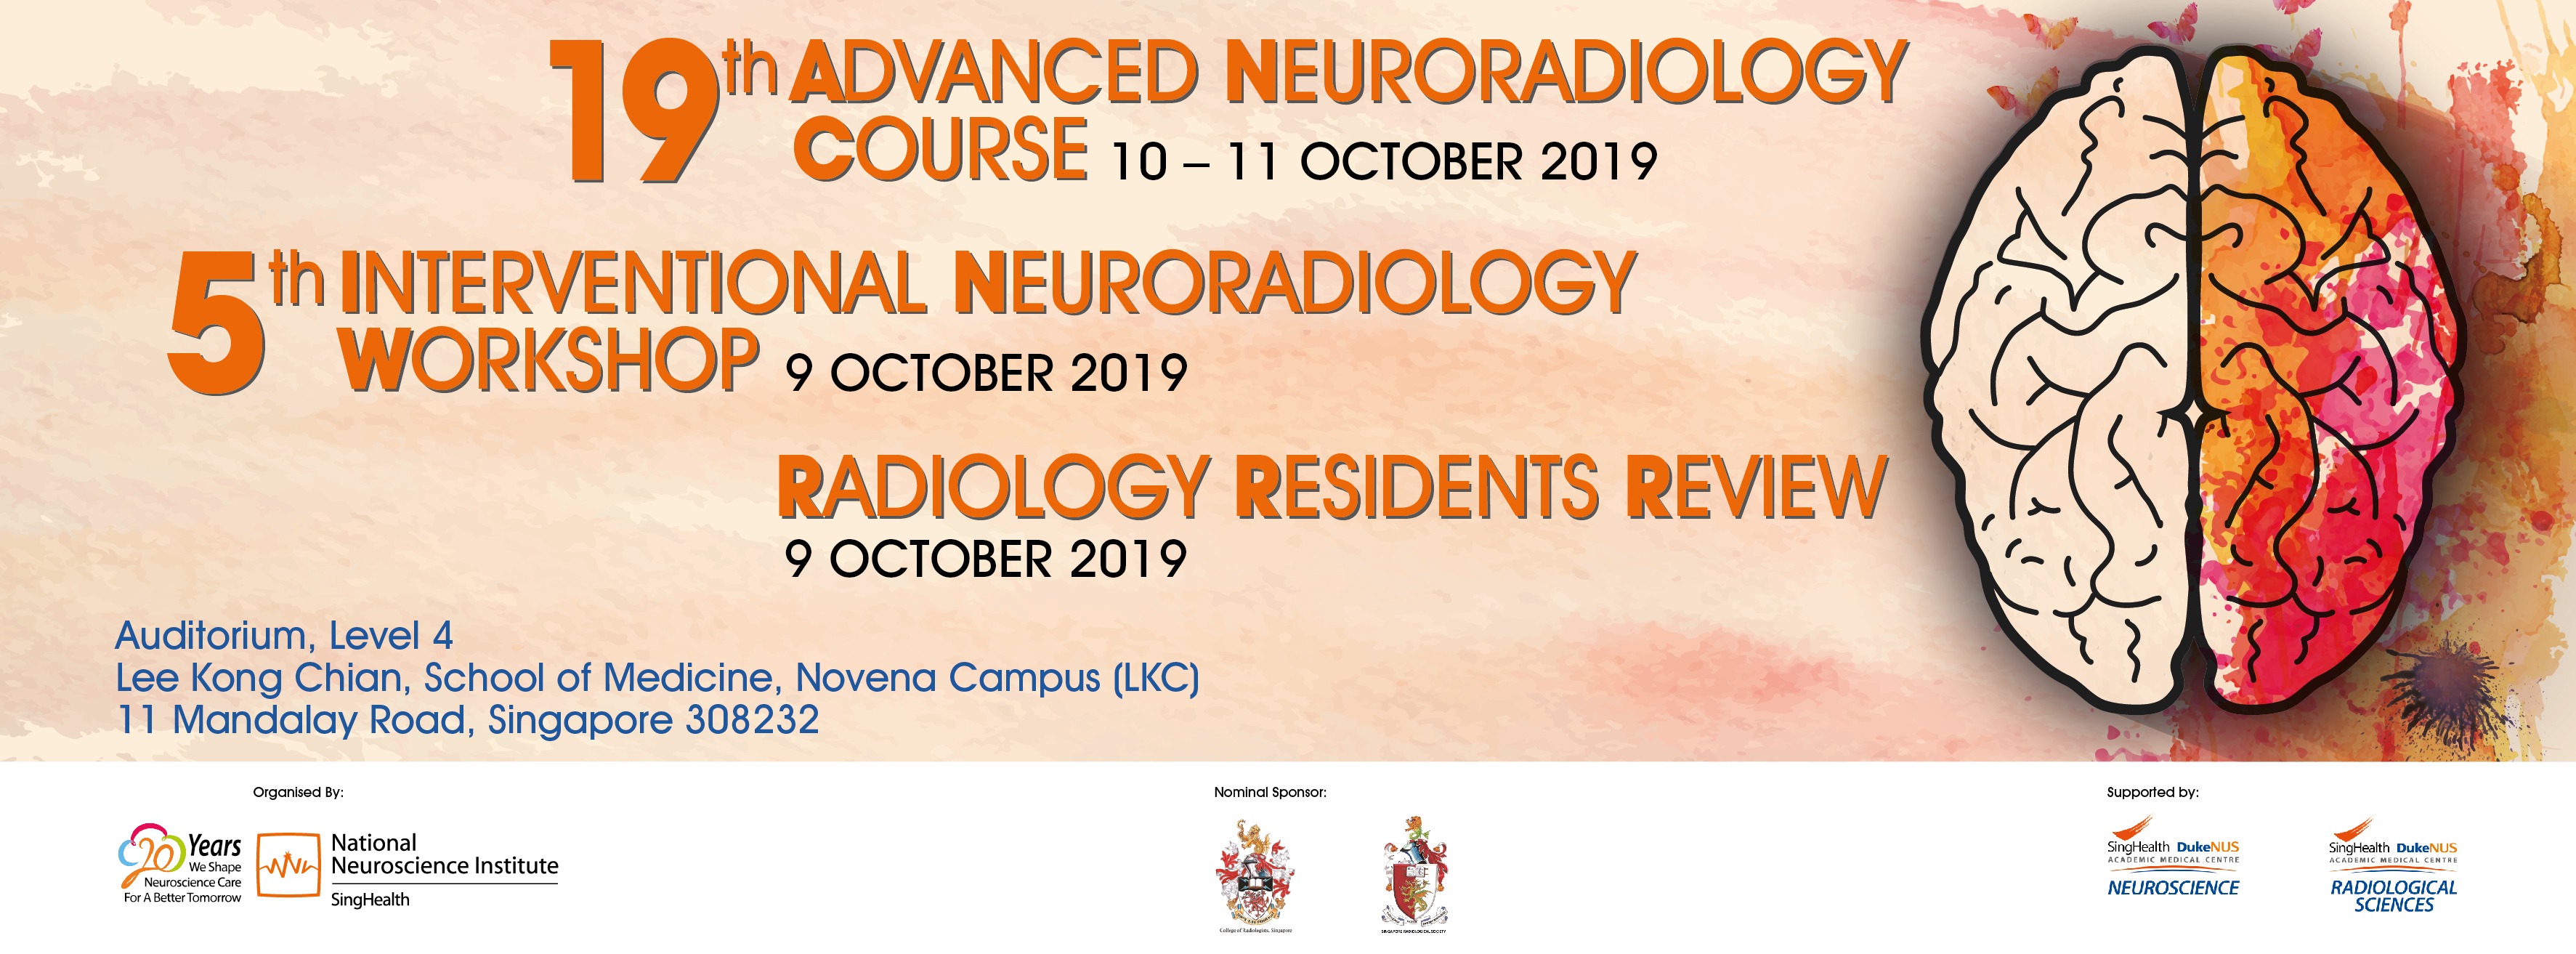 19th Advanced Neuroradiology Course and 5th Interventional Neuroradiology Workshop organised by the National Neuroscience Institute of Singapore Banner Image